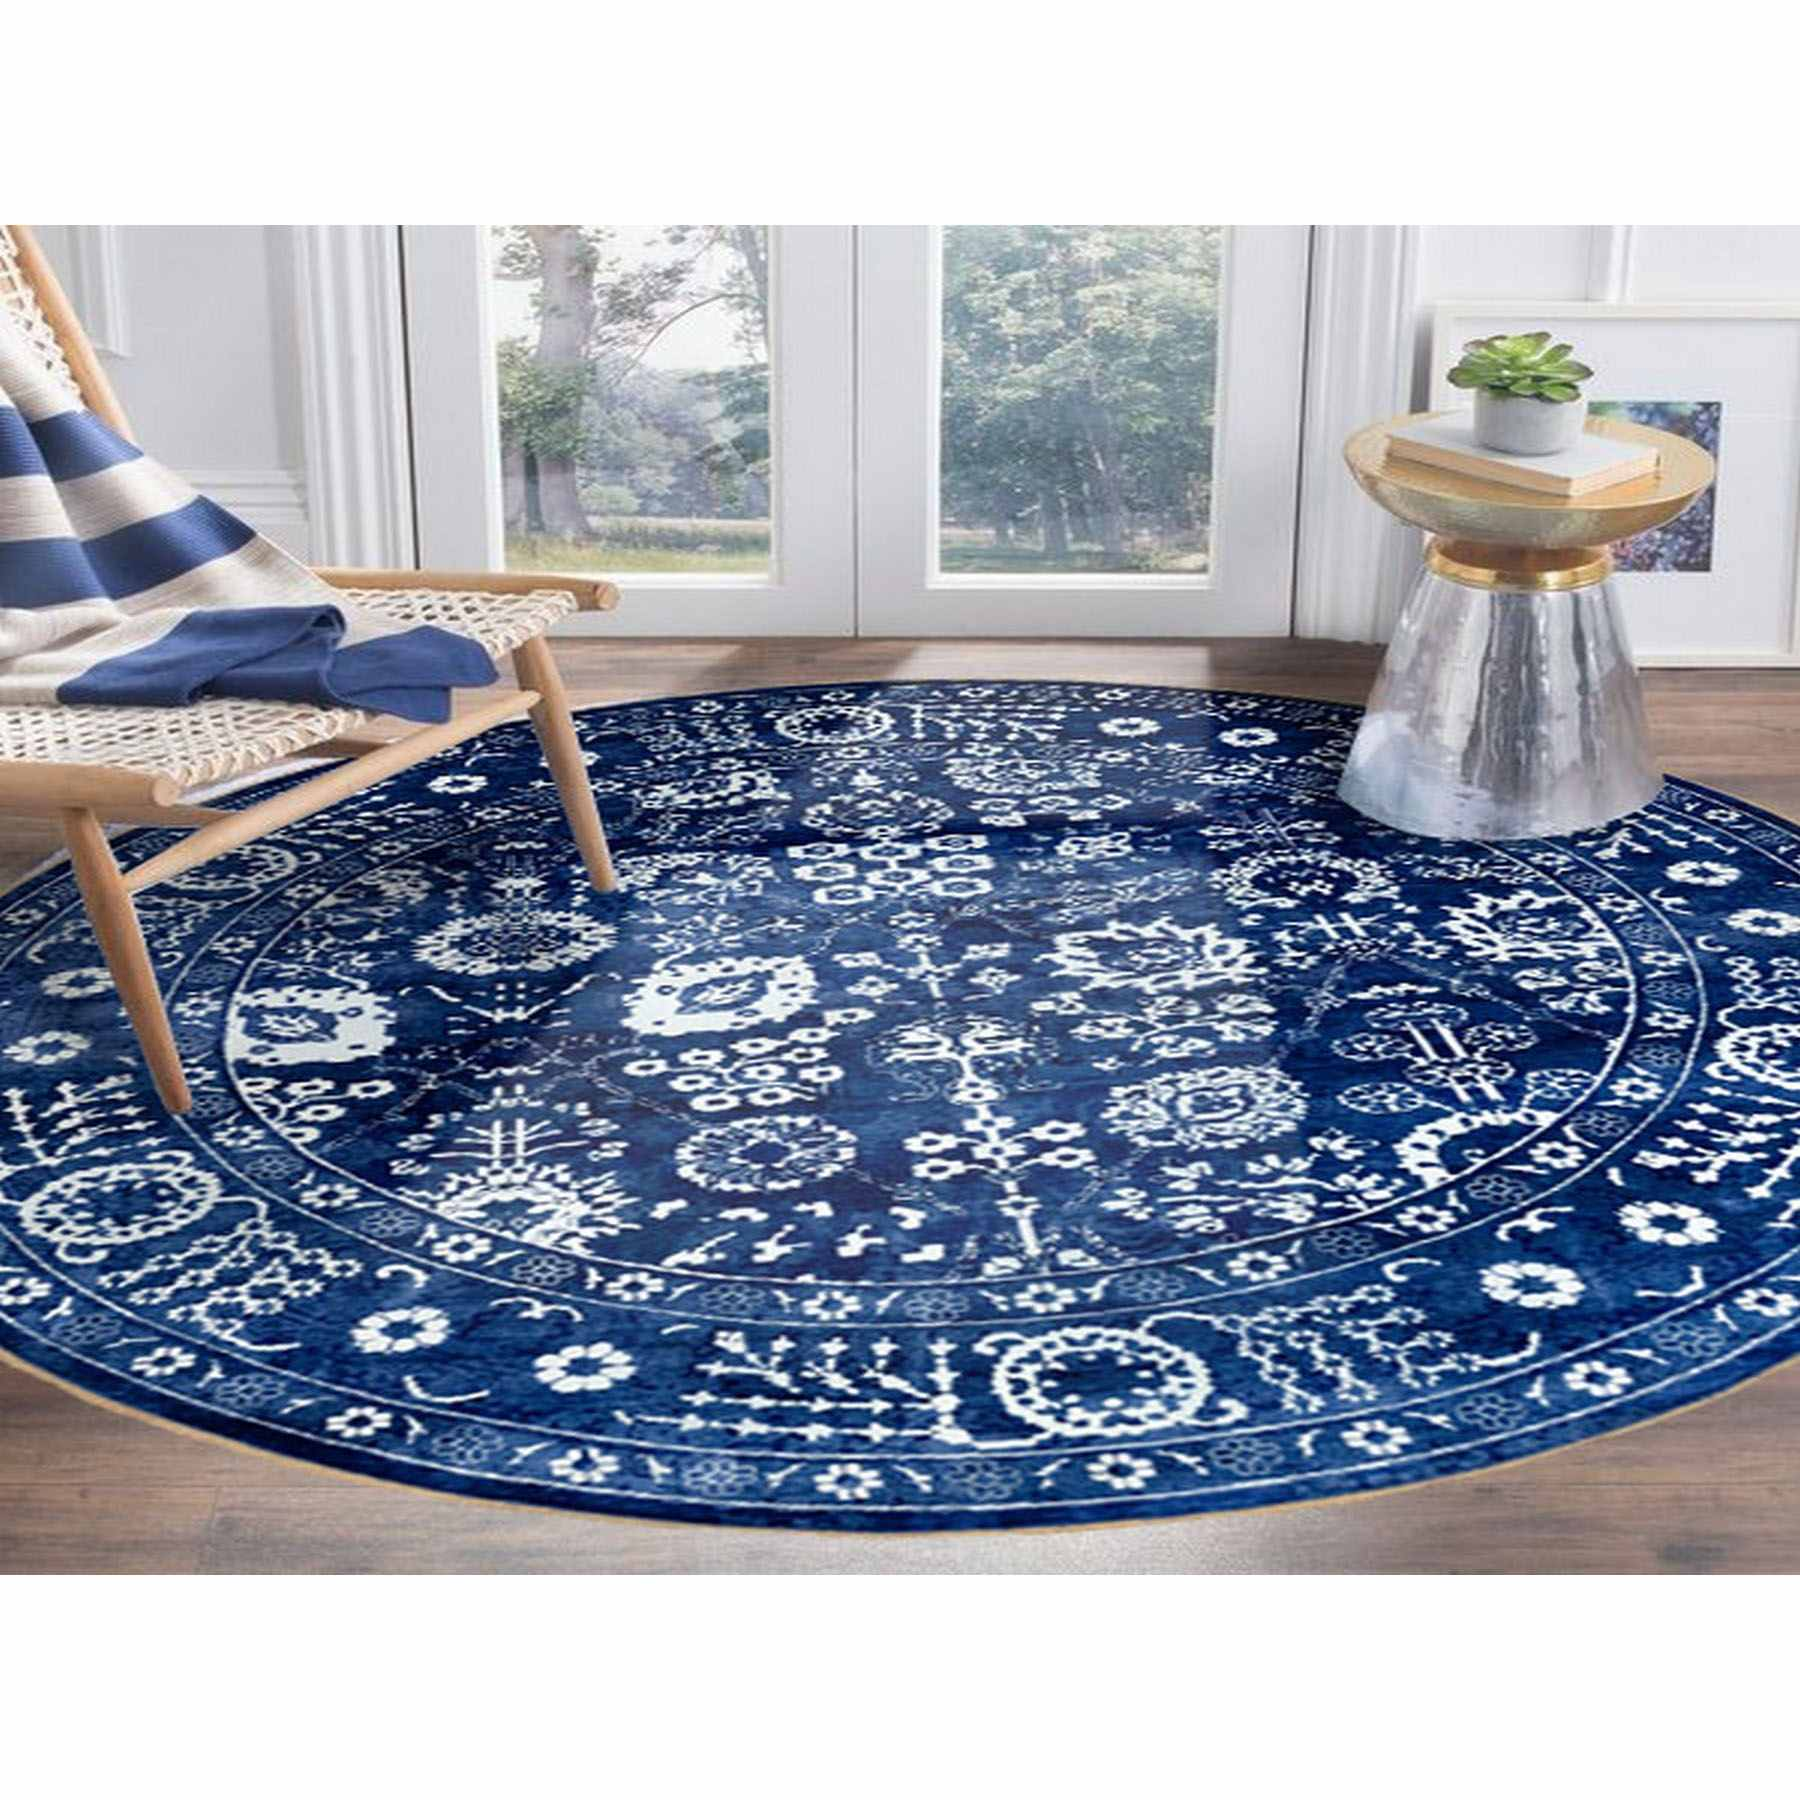 Transitional-Hand-Knotted-Rug-292810